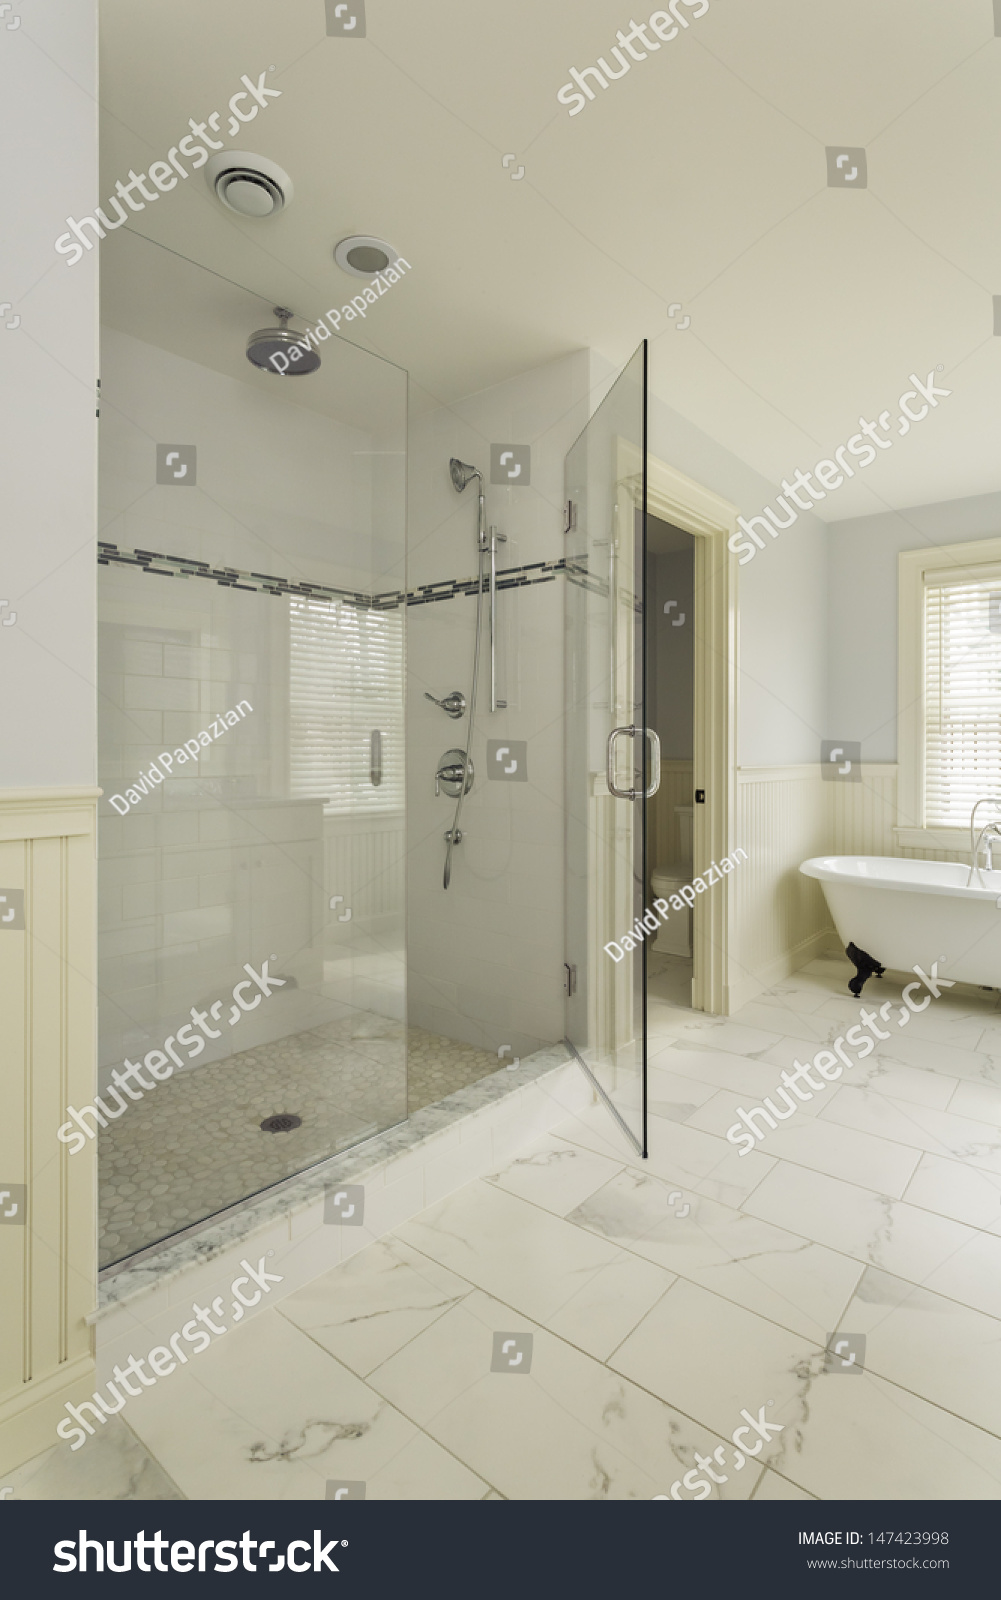 Luxury Large Walk In Showers.Luxury Master Bathroom Enclosed Glass Shower Vertical Stock